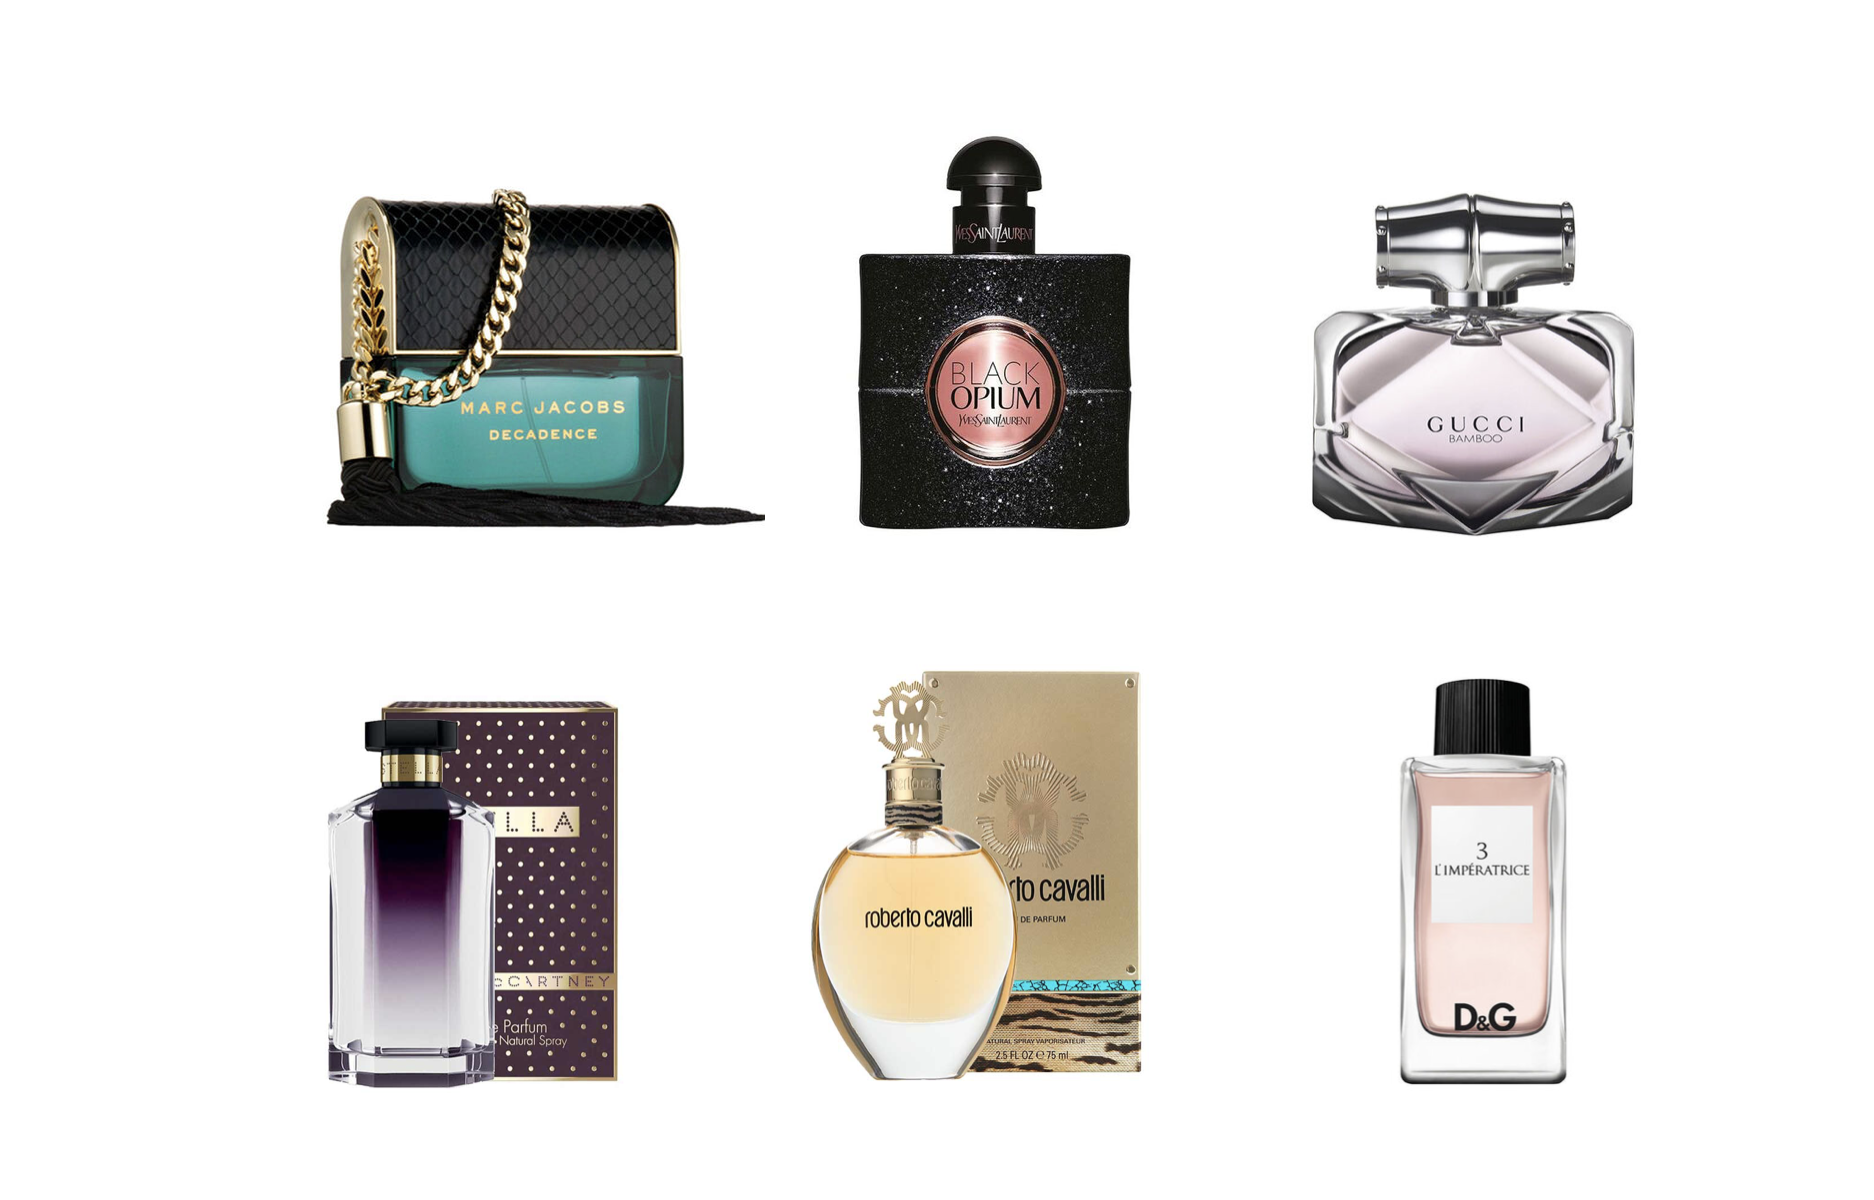 These are the bestselling perfumes of 2019